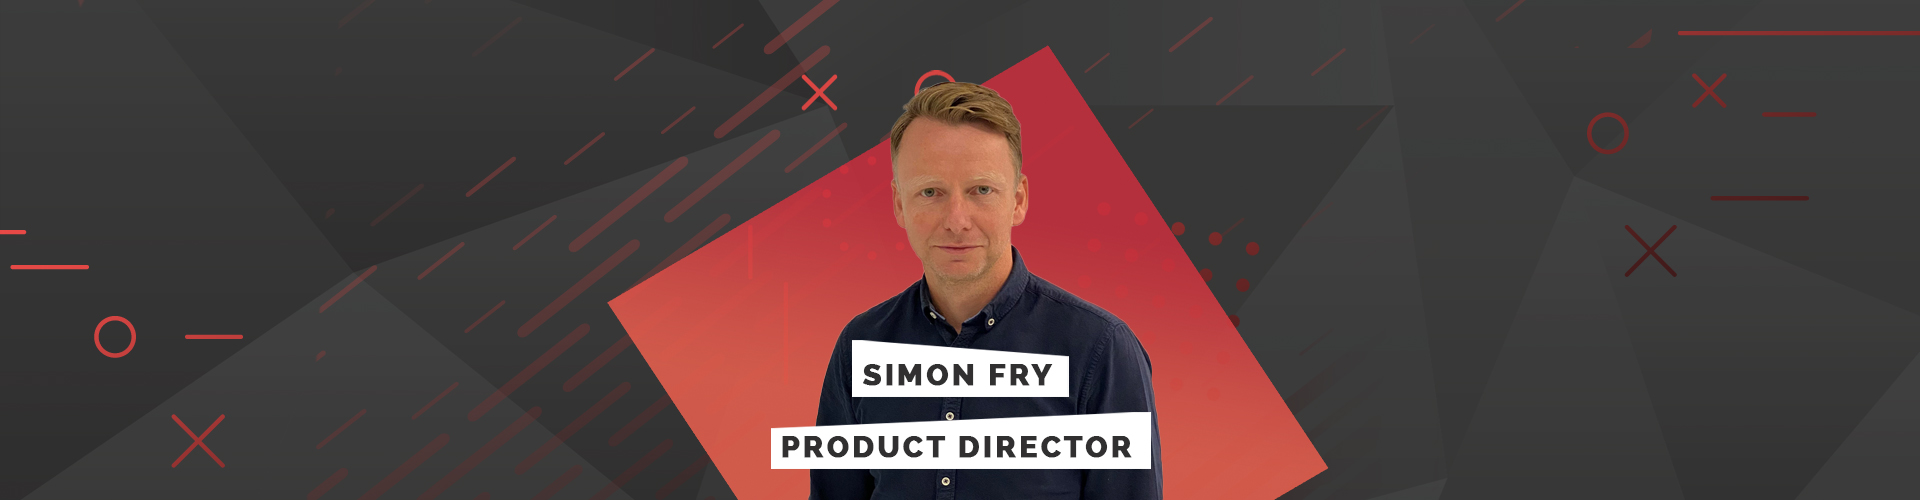 PageSuite Welcomes Simon Fry